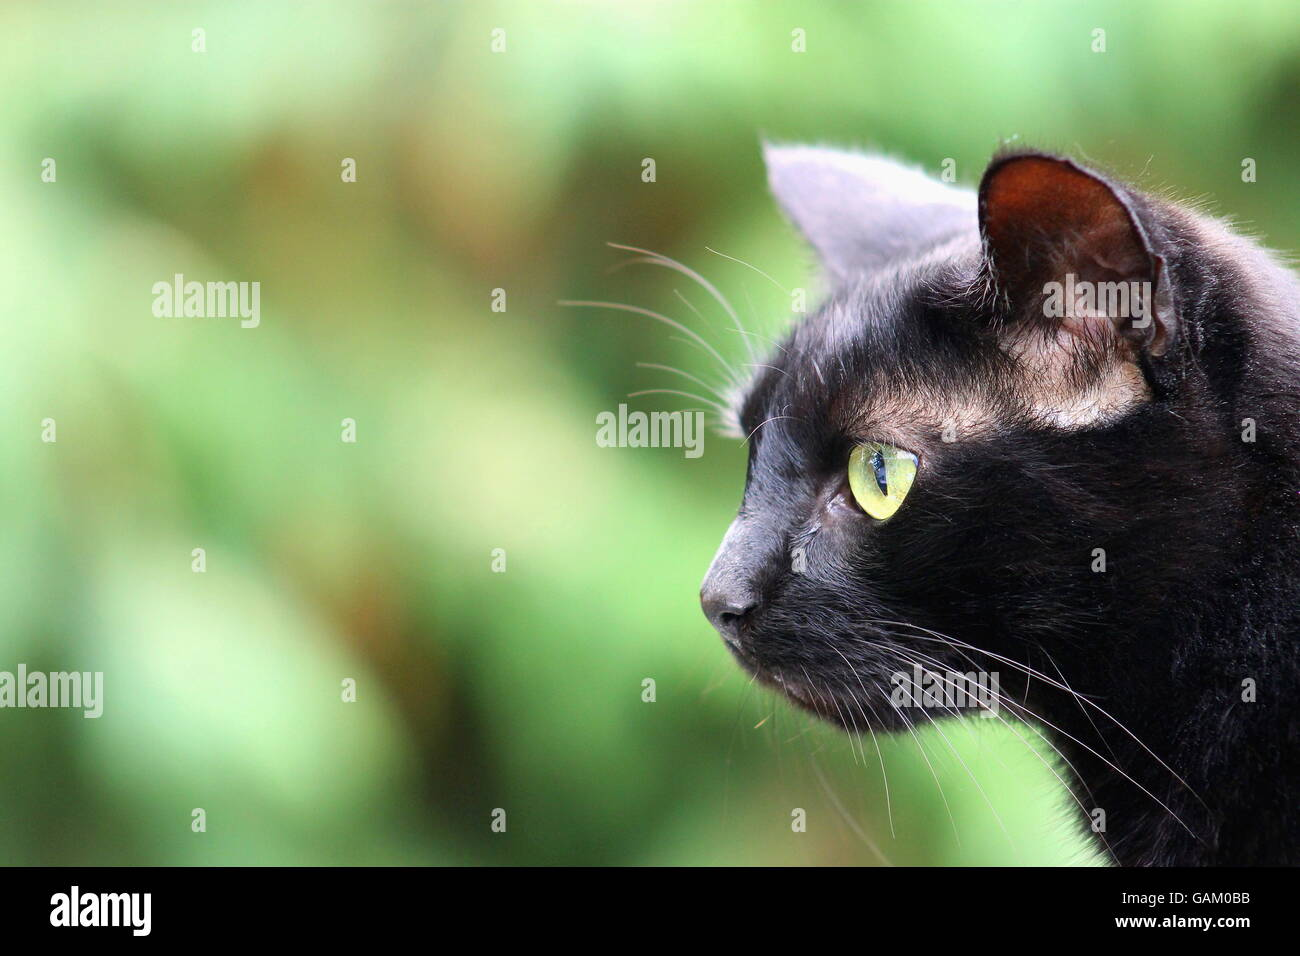 Black Cat with copy space - Stock Image